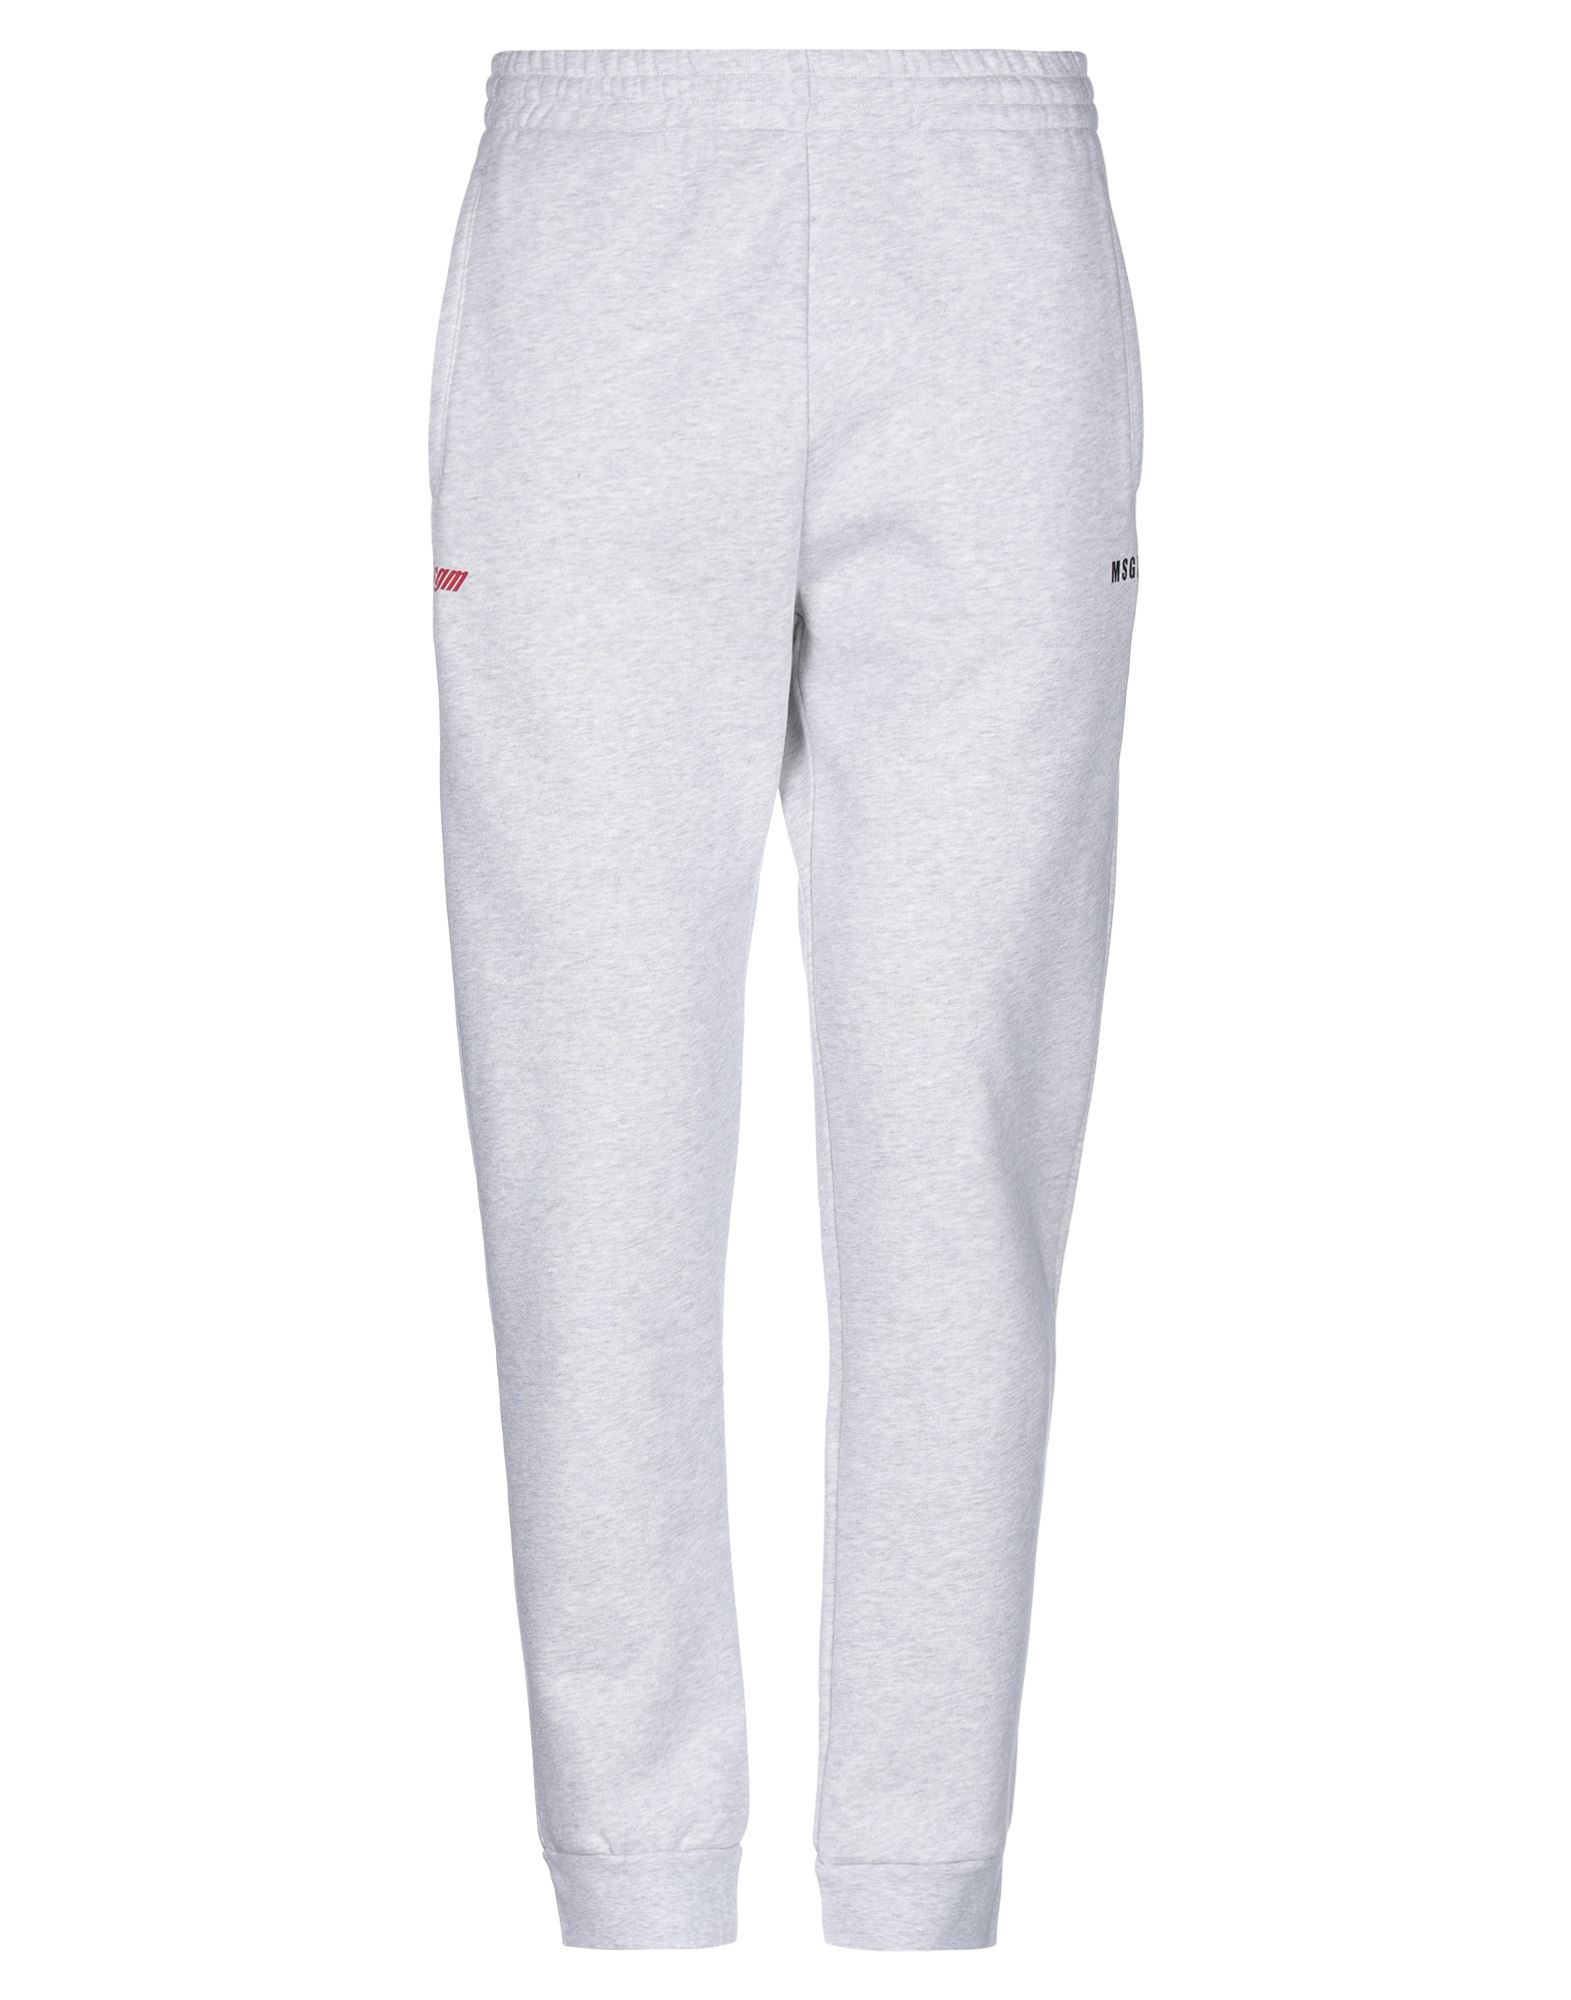 MSGM Casual pants. sweatshirt fleece, logo, high waisted, comfort fit, tapered leg, elasticized waist, multipockets, fleece lining, solid color, large sized. 100% Cotton